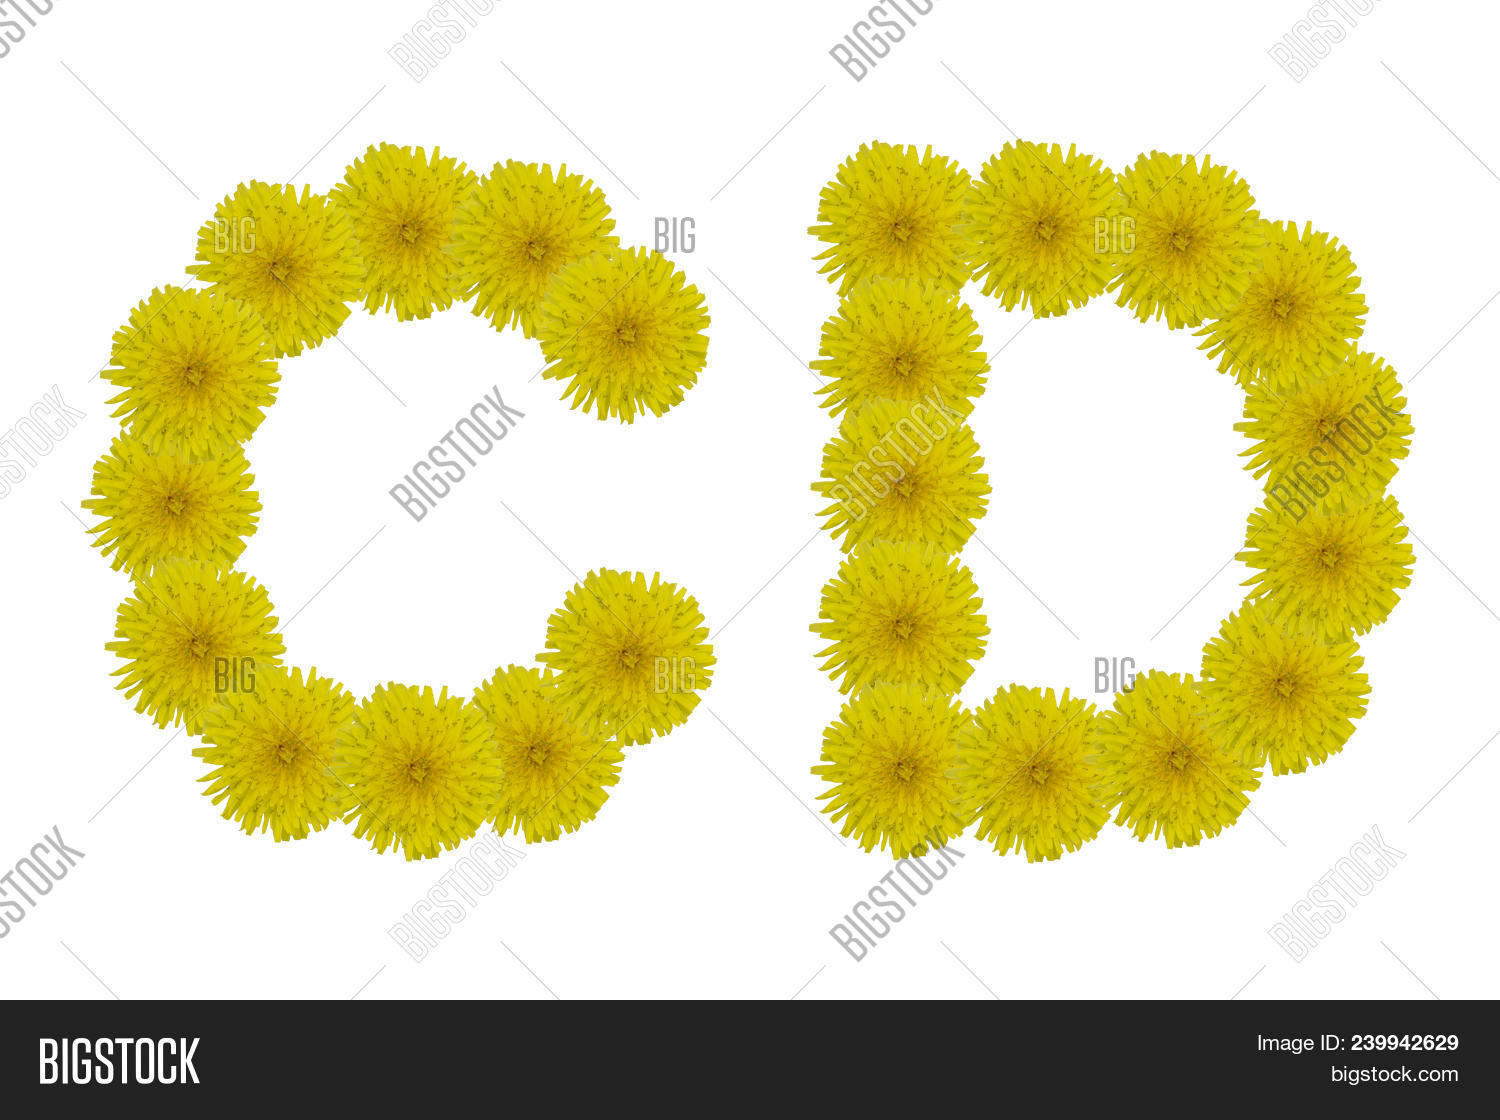 Floral Letters C D Image Photo Free Trial Bigstock